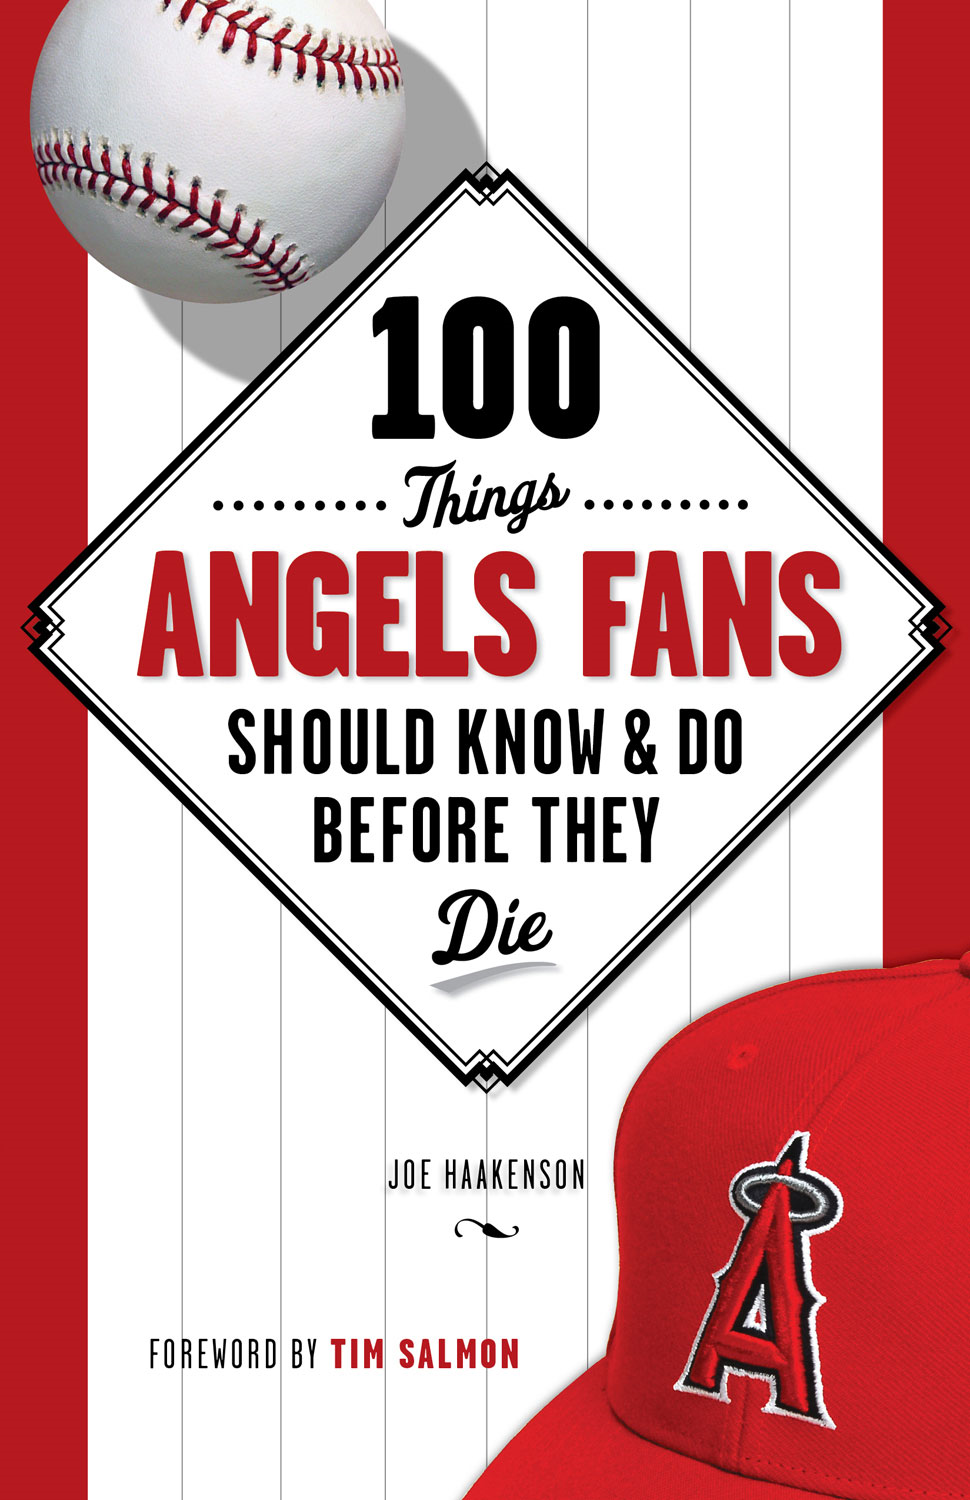 100 Things Angels Fans Should Know & Do Before They Die